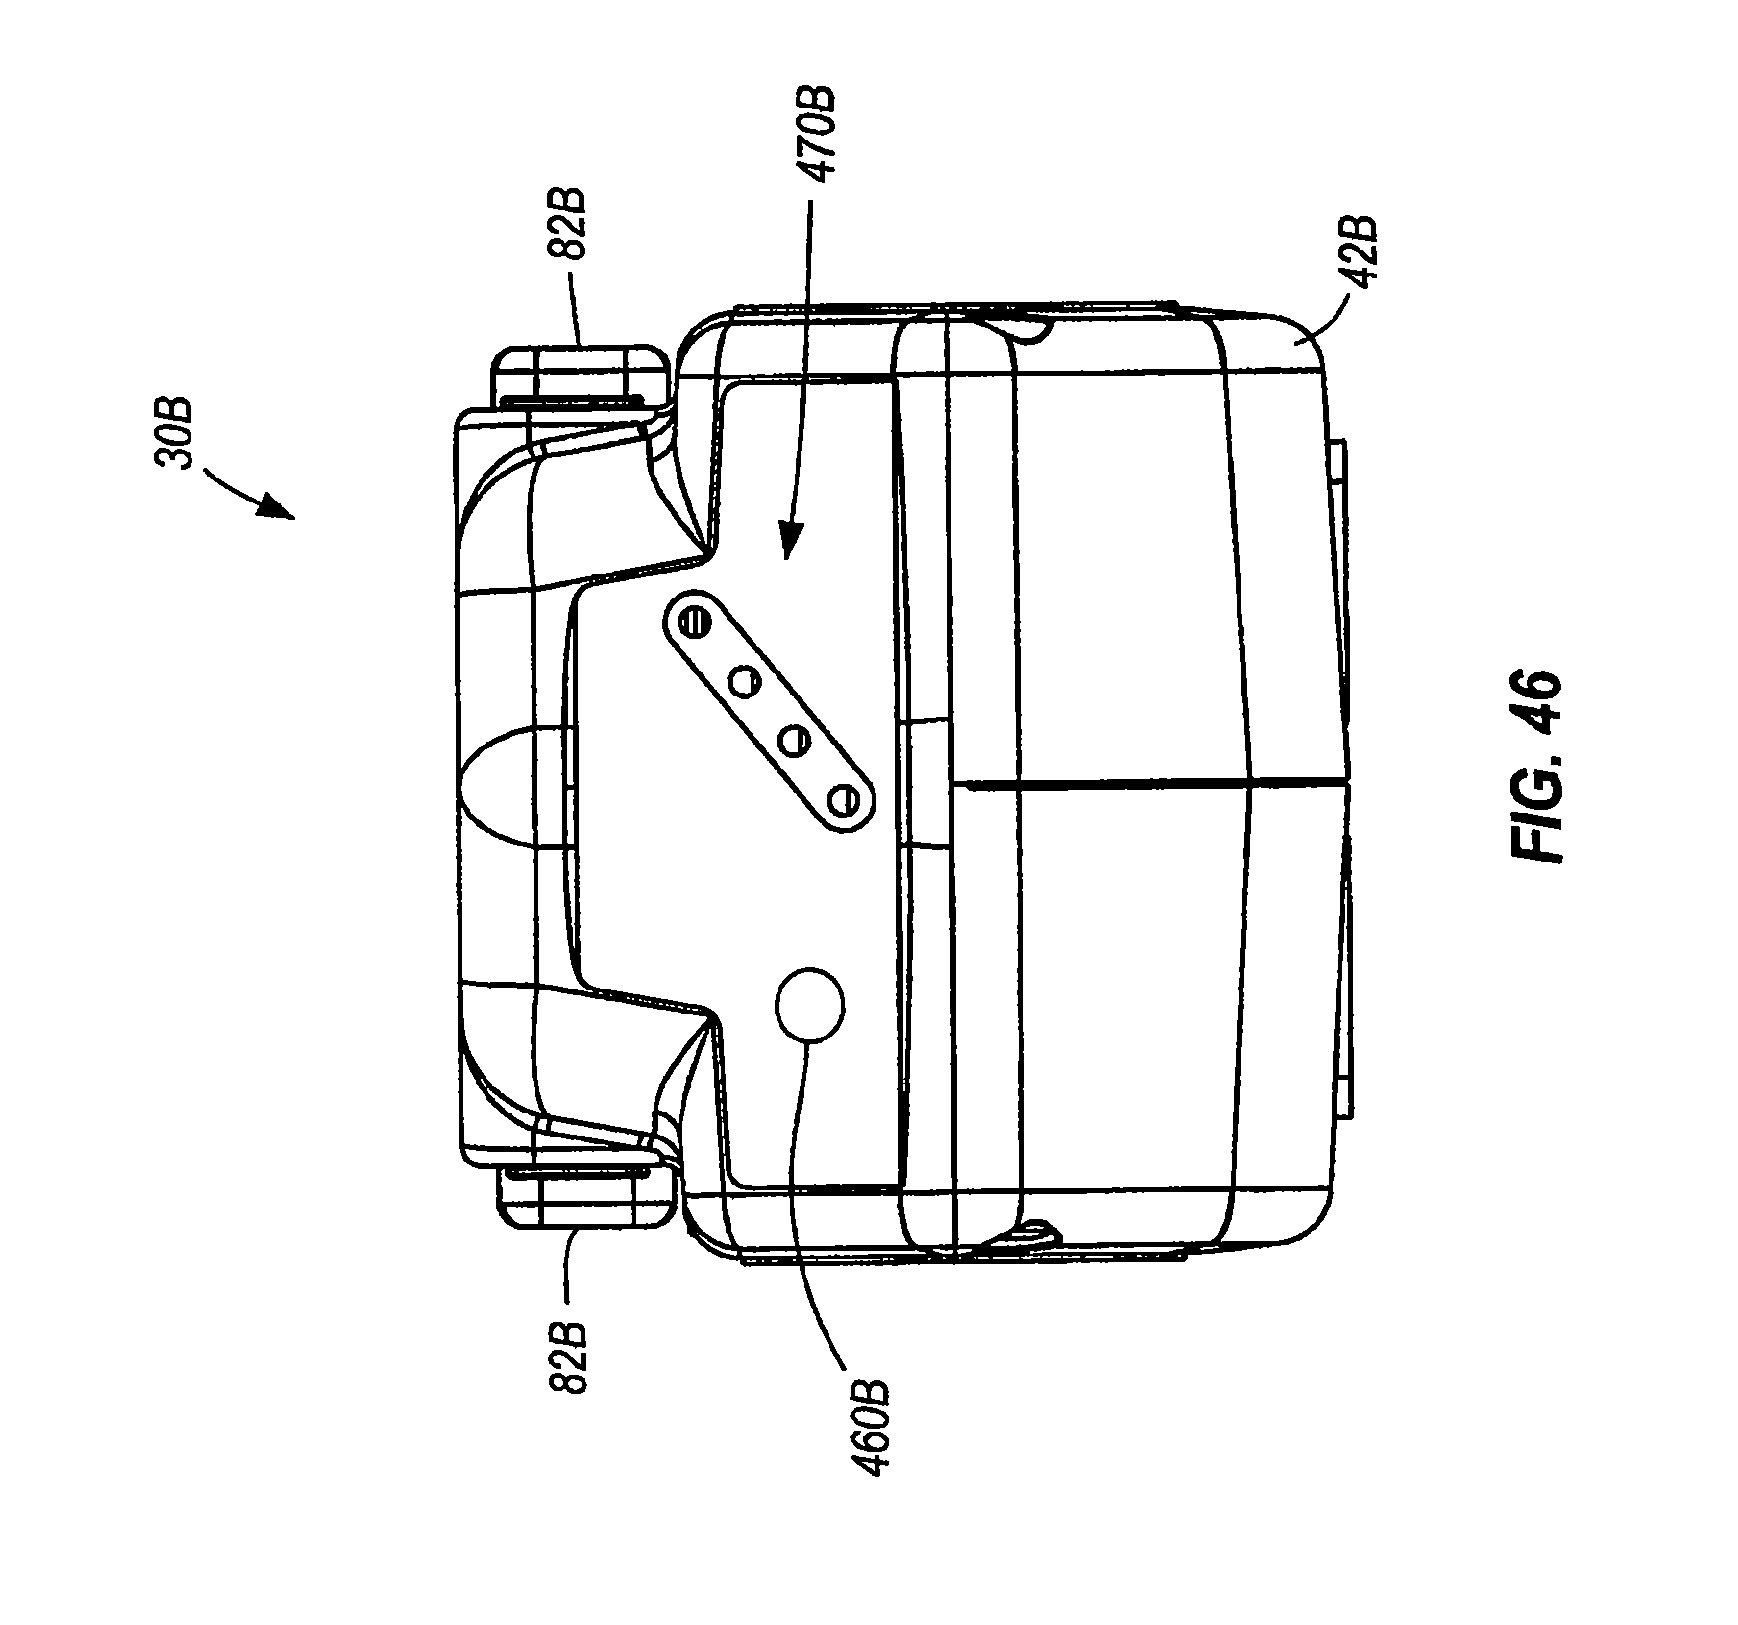 patent us8154249 - battery pack